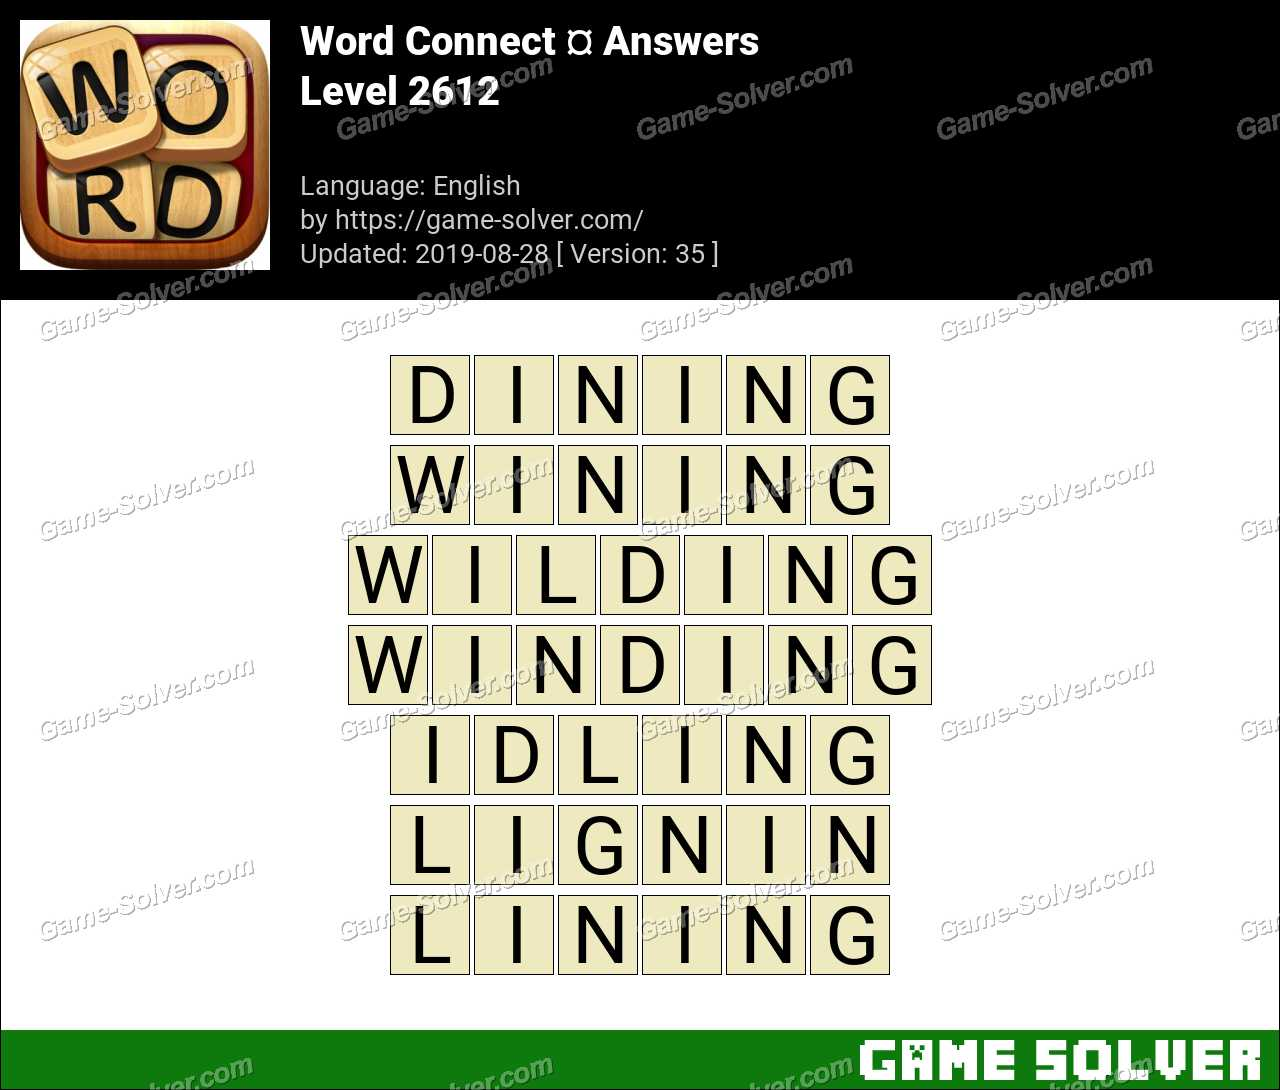 Word Connect Level 2612 Answers